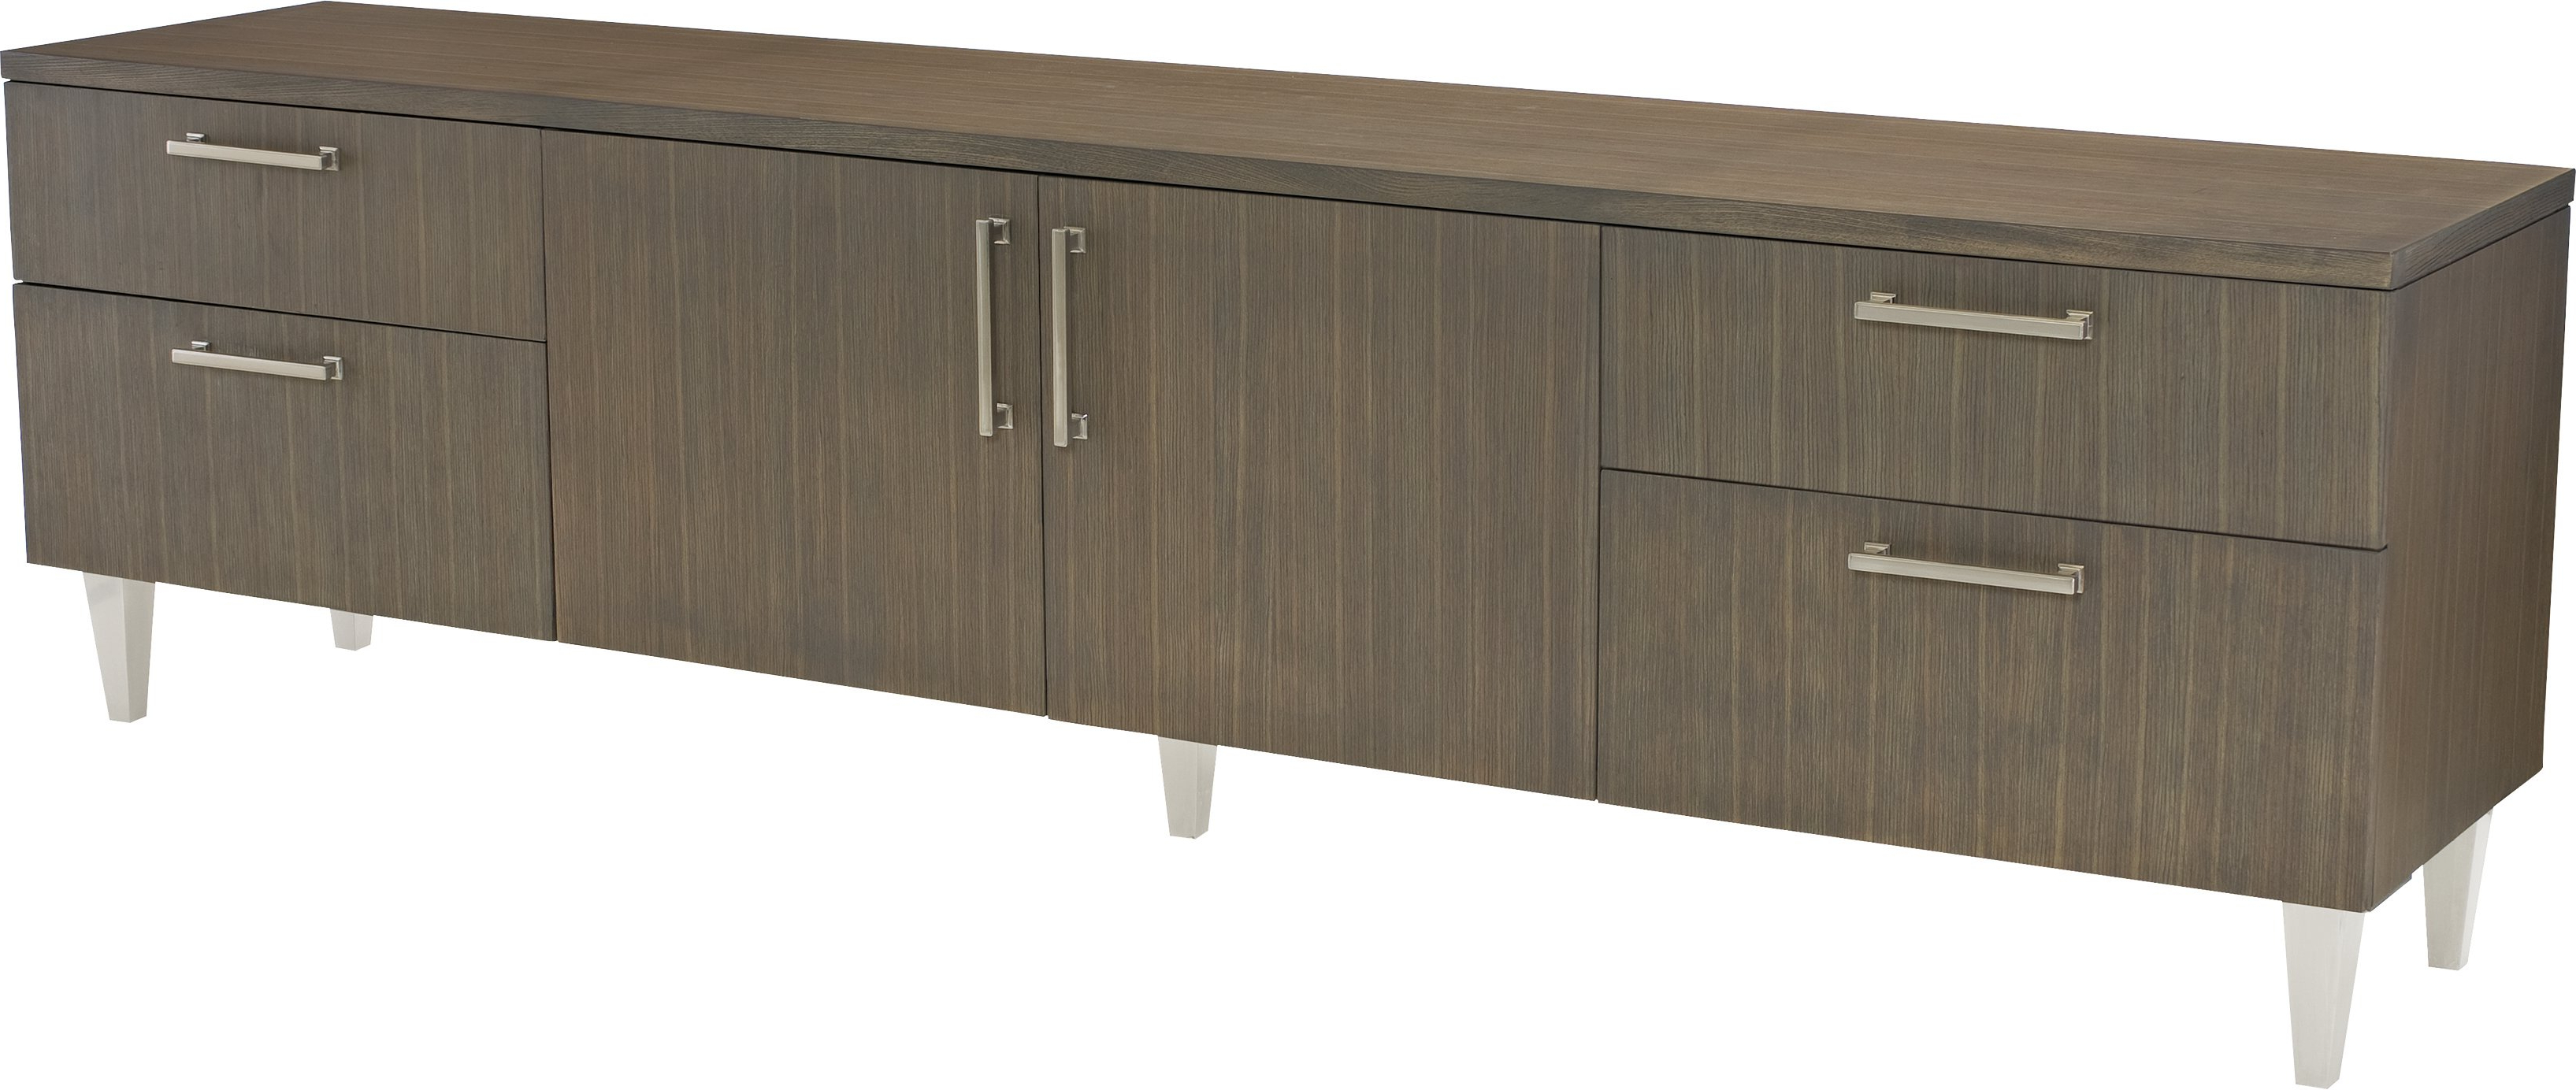 70 Inch Tv Stands | Joss & Main Throughout Bale Rustic Grey 82 Inch Tv Stands (View 16 of 20)